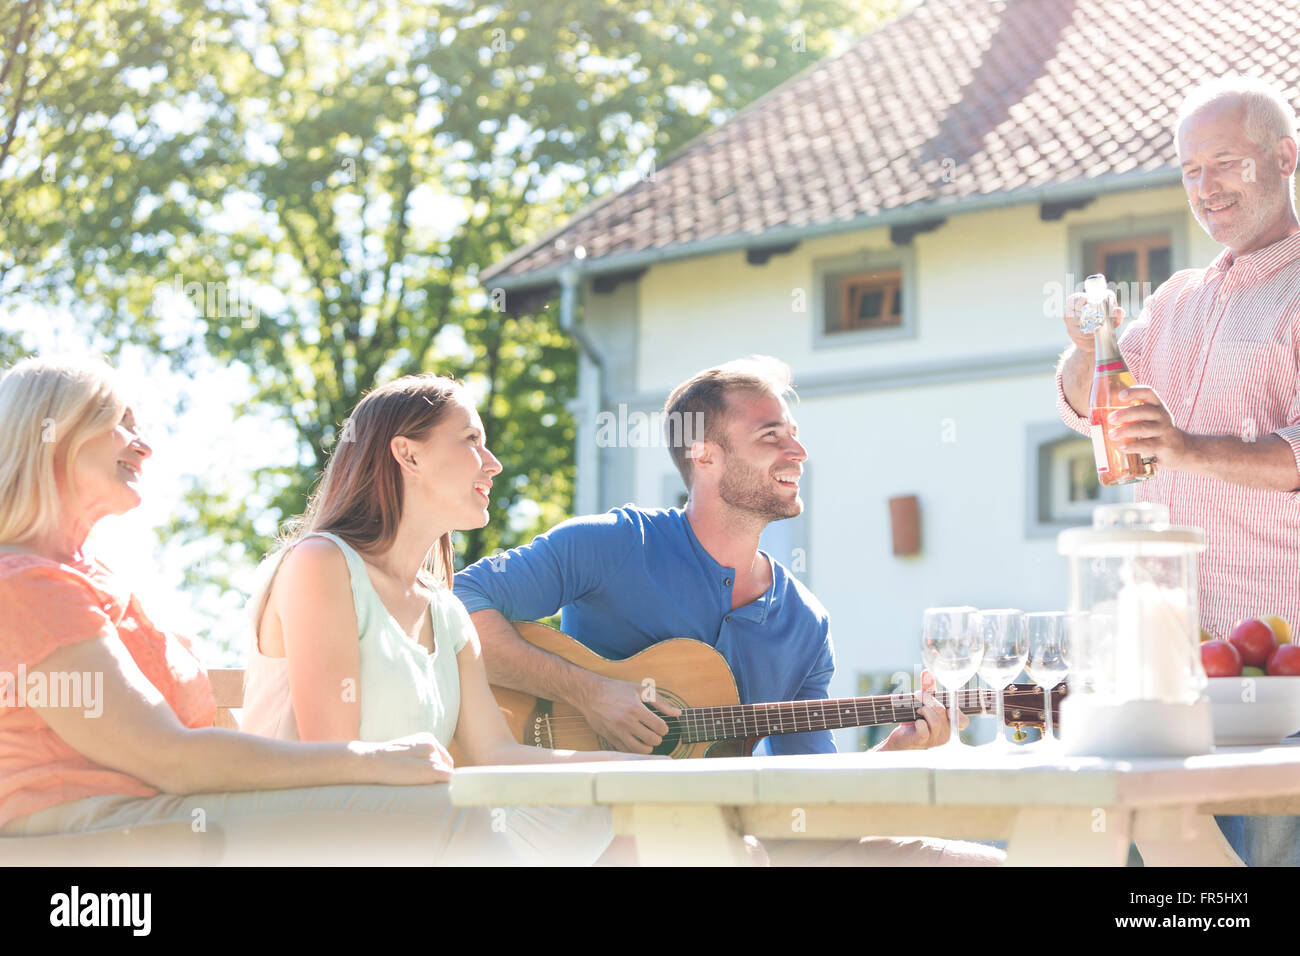 Father opening bottle of rose wine for family at sunny patio table - Stock Image